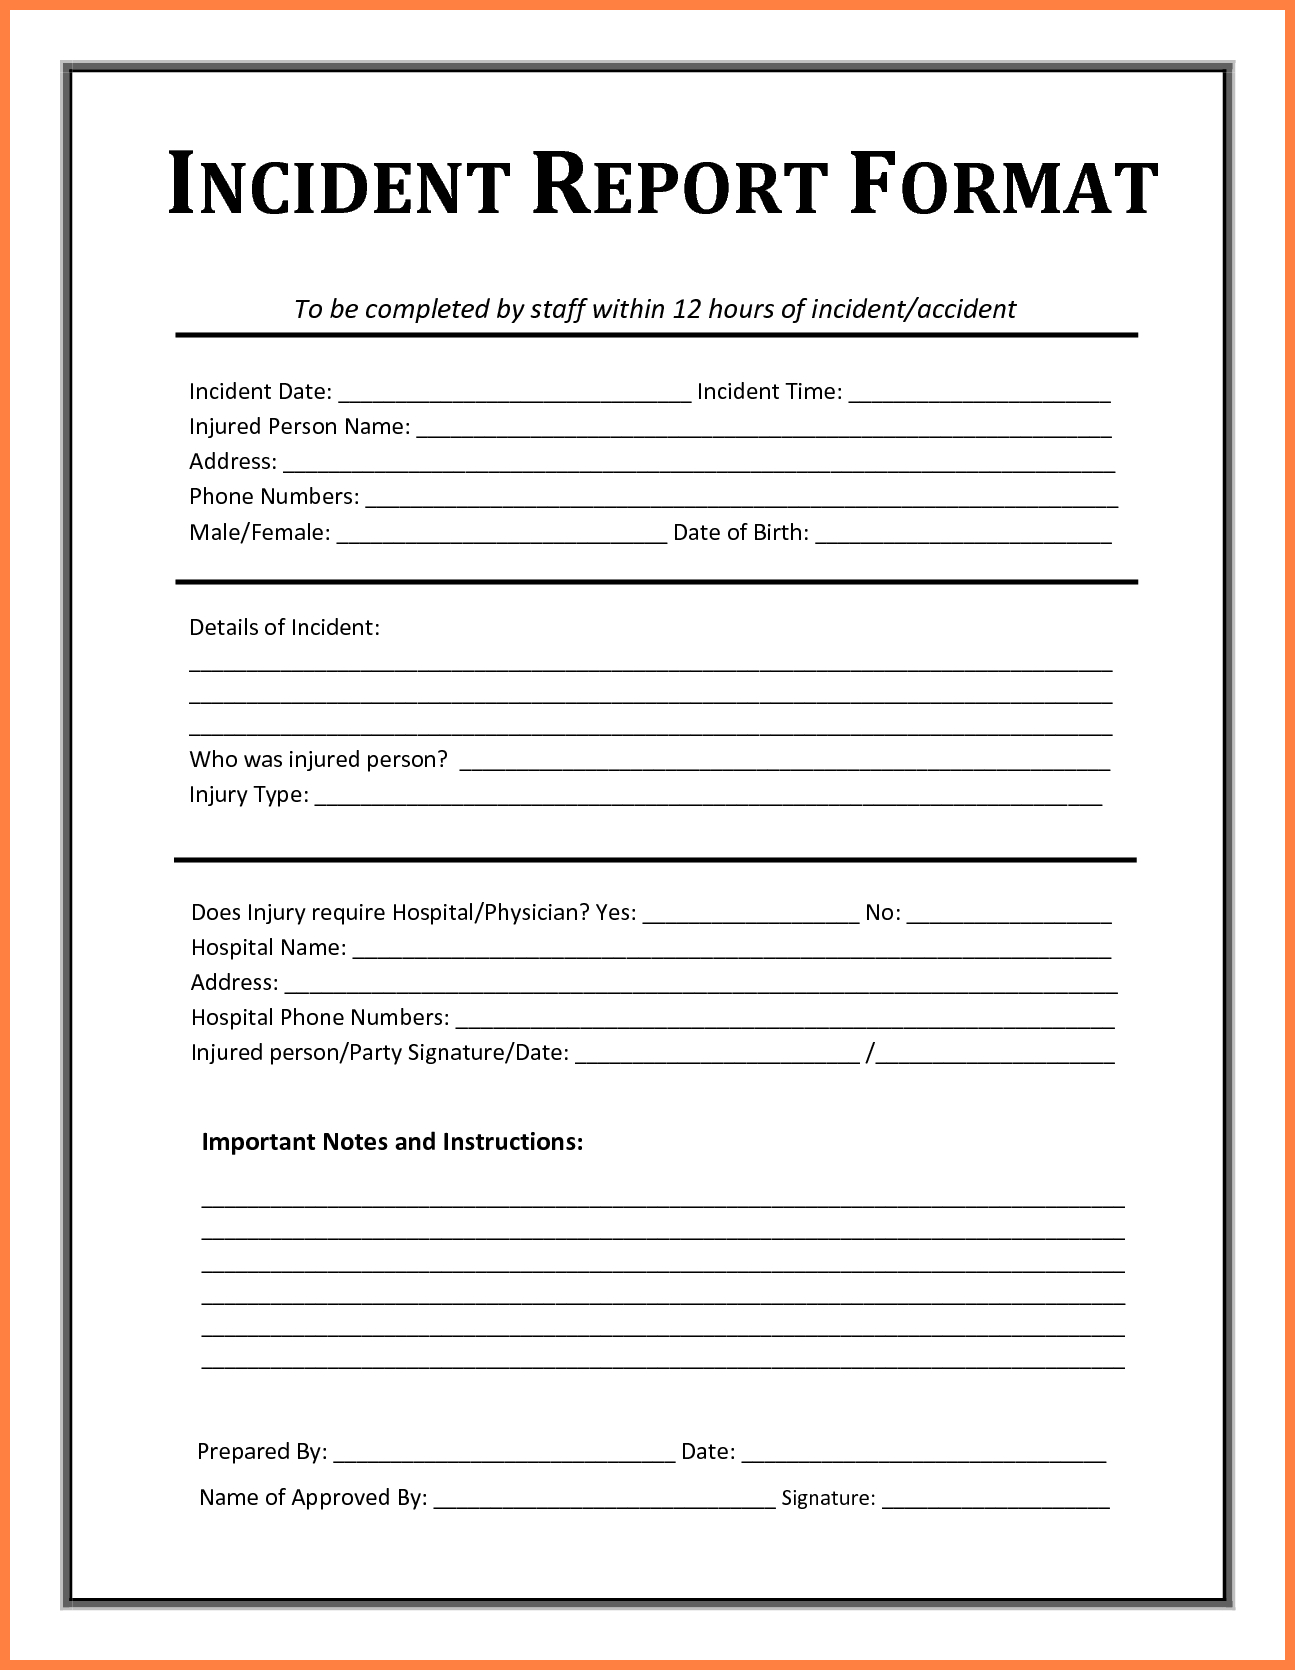 Incident Report Template - Free Incident Report Templates Smartsheet - Free Printable Incident Report Form